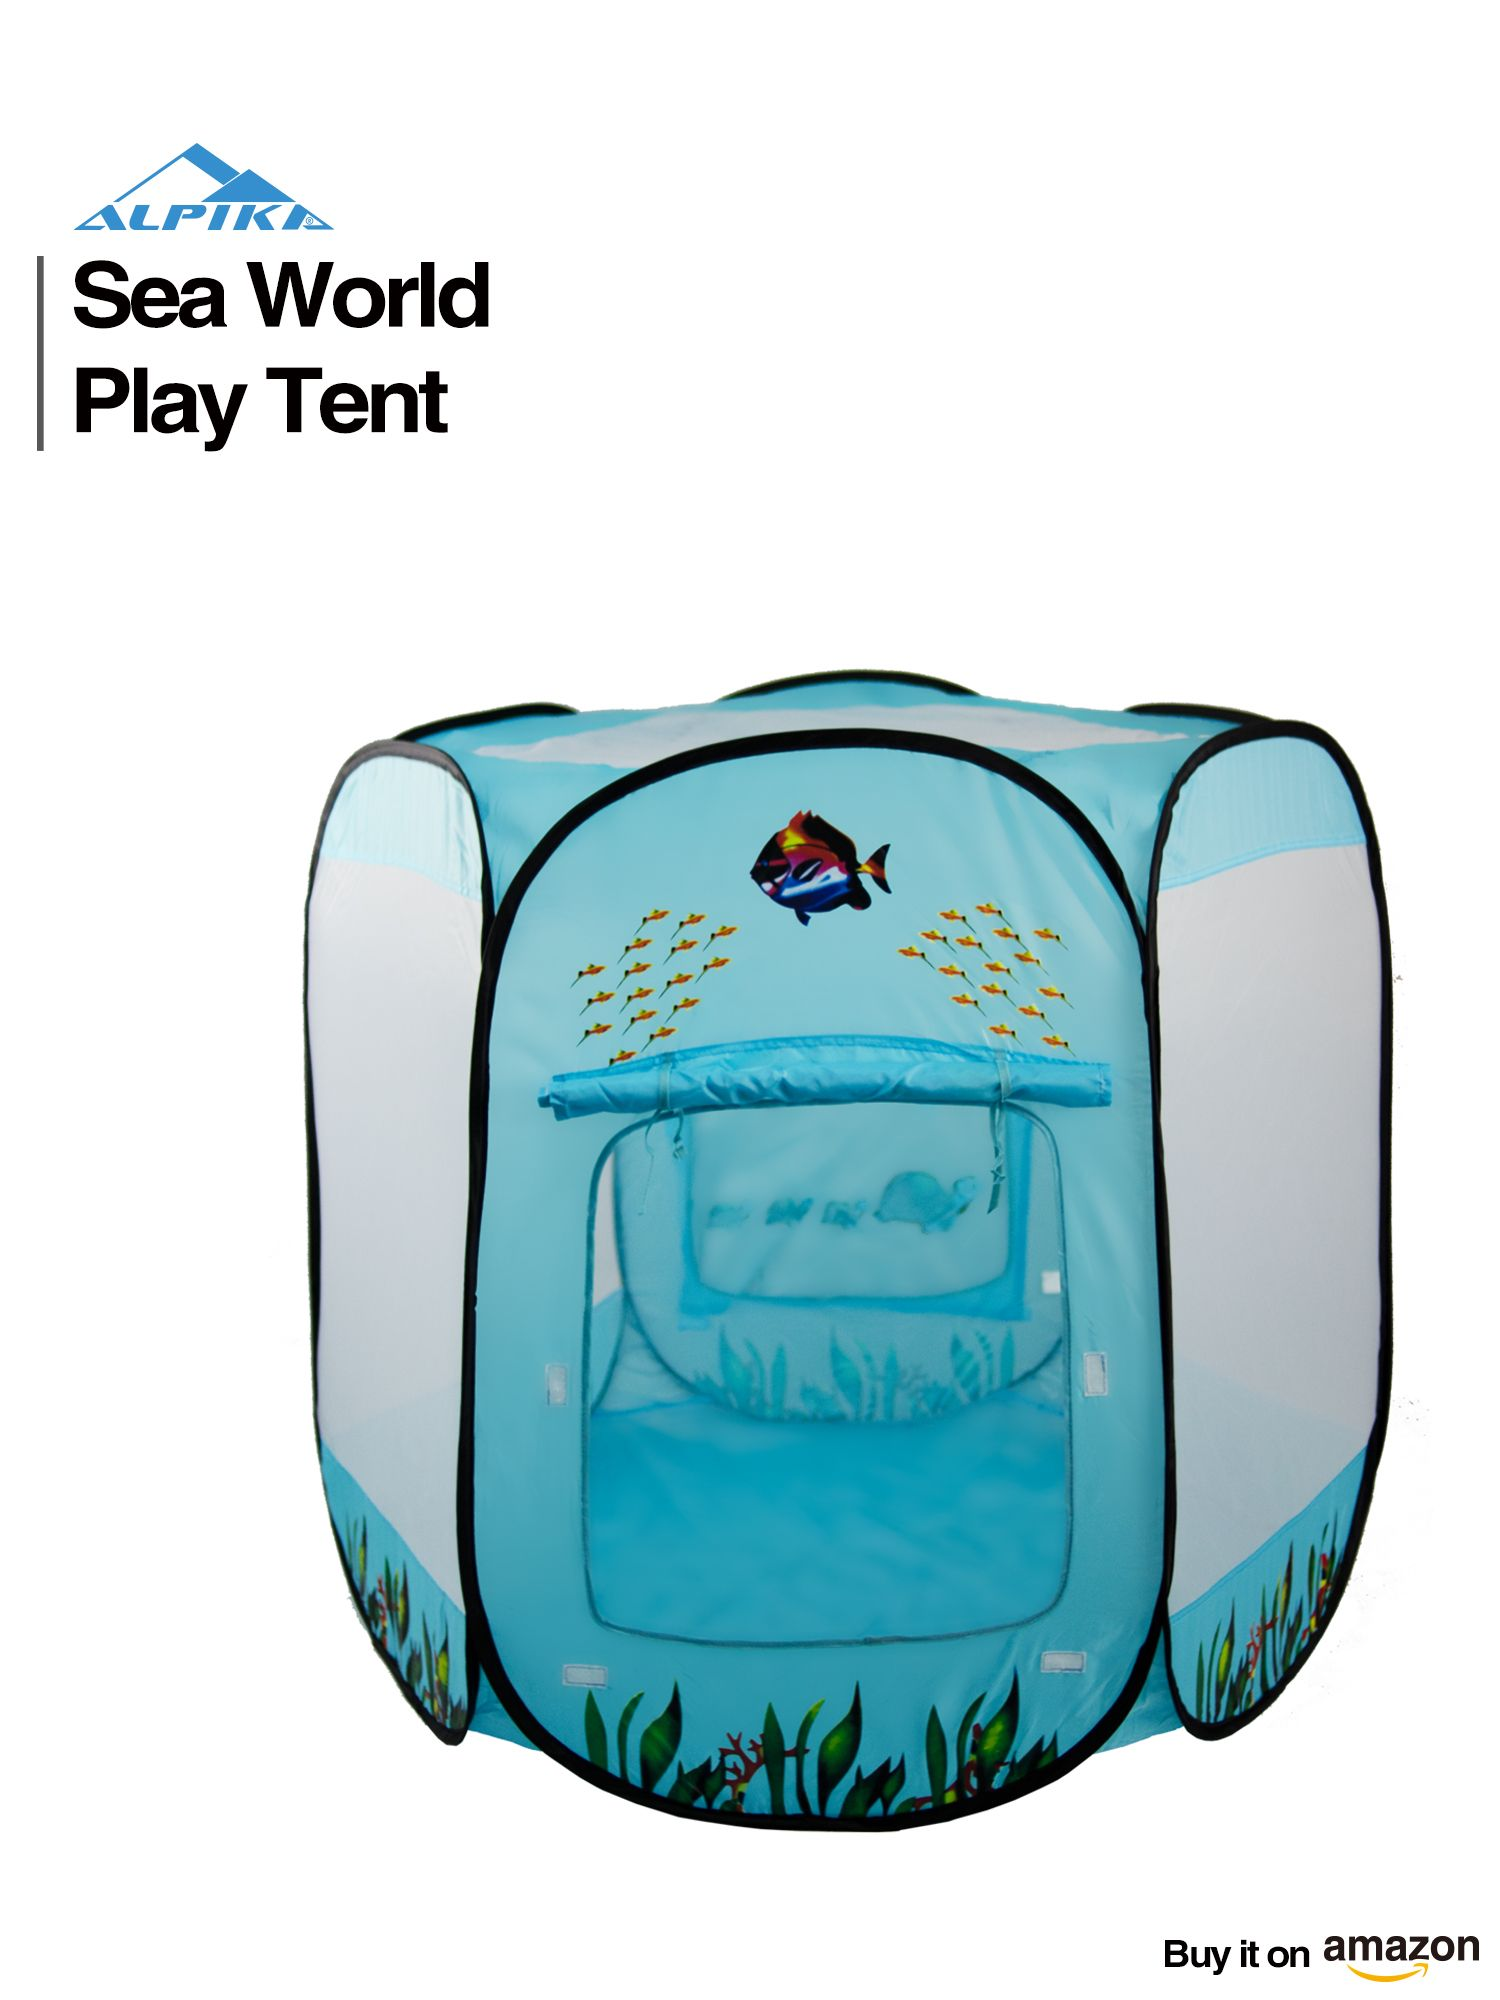 Alpika Pop up Play Tent and Ball Pit with Storage Bag Hexagonal Prism (Sea World) **Big Ball Pit** Want to Find a Good Space for Your Kidsu0027 Indoor ...  sc 1 st  Pinterest & Alpika Pop up Play Tent and Ball Pit with Storage Bag Hexagonal ...